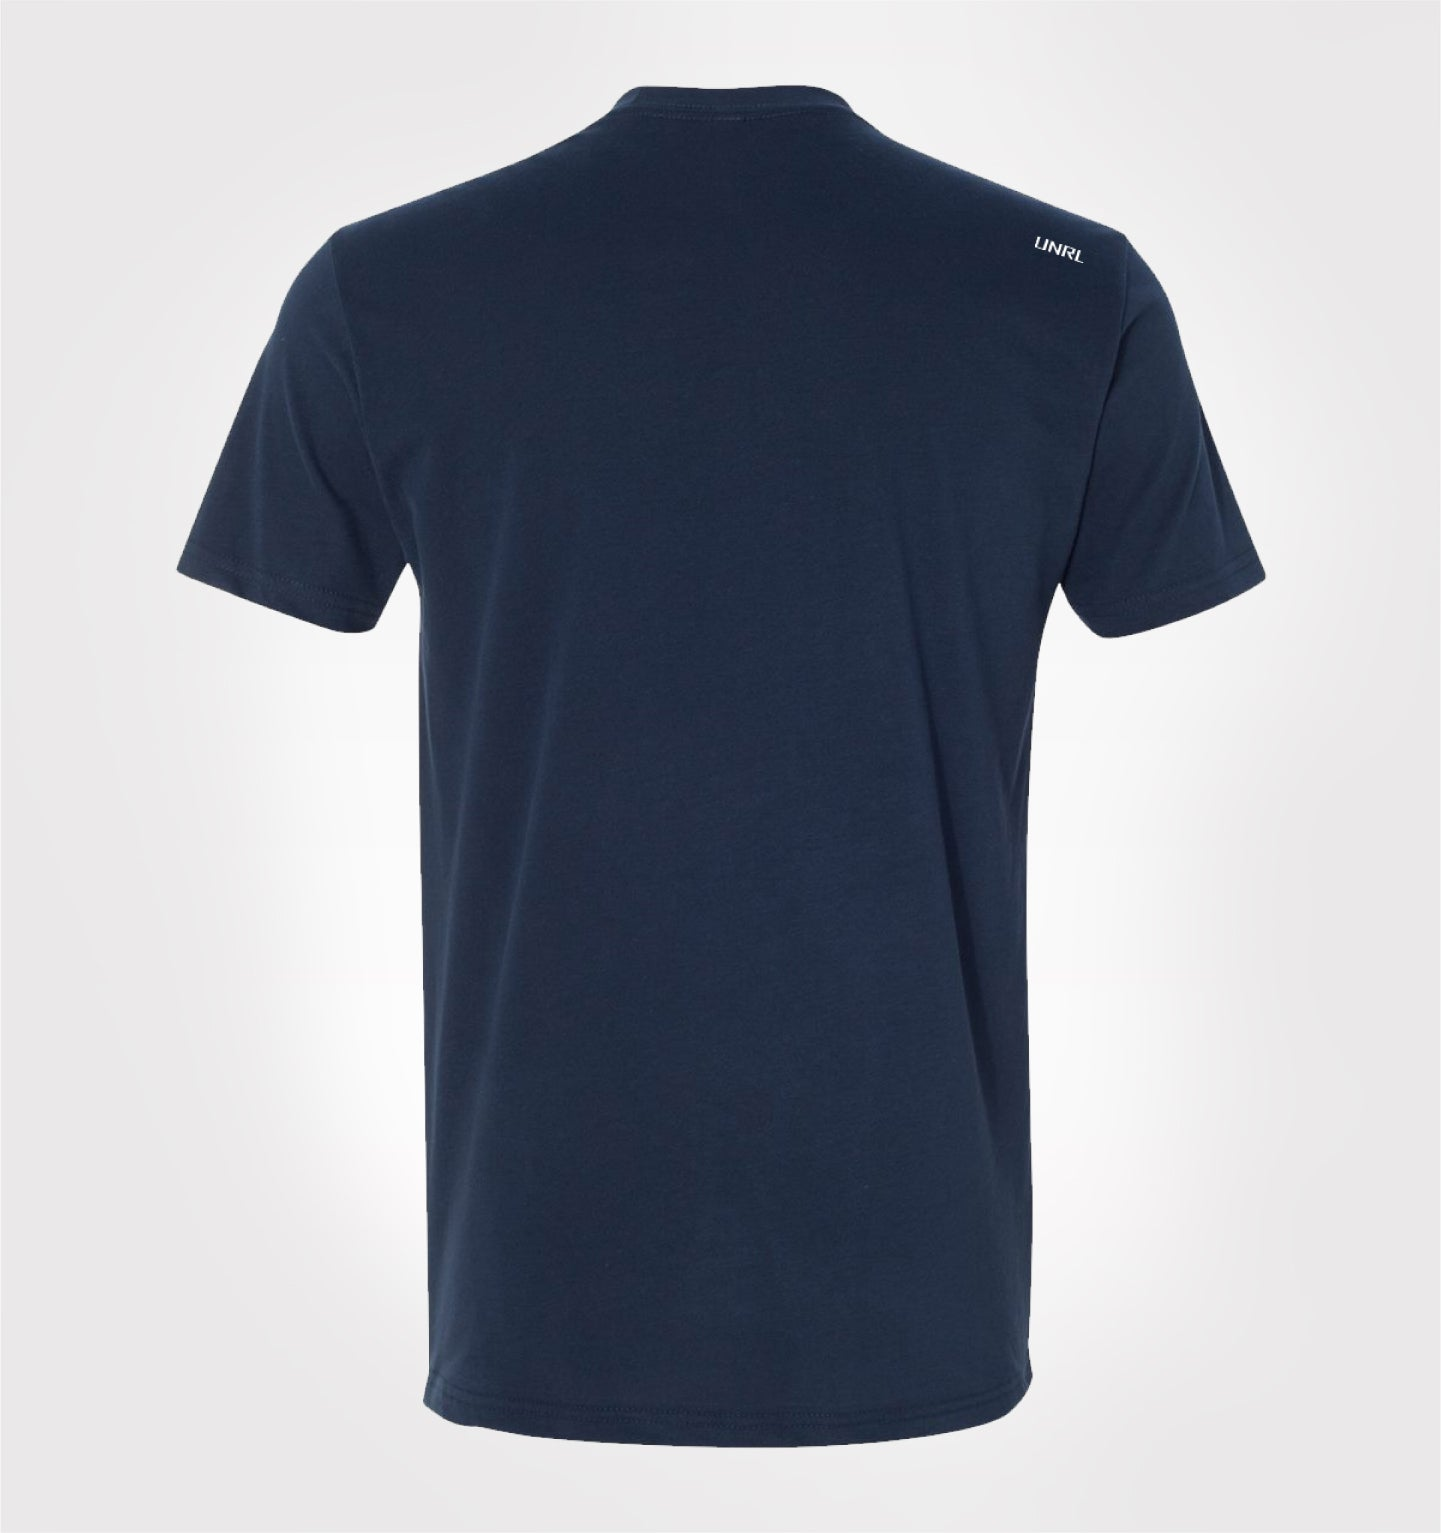 NCHC Classic Tee [Navy]